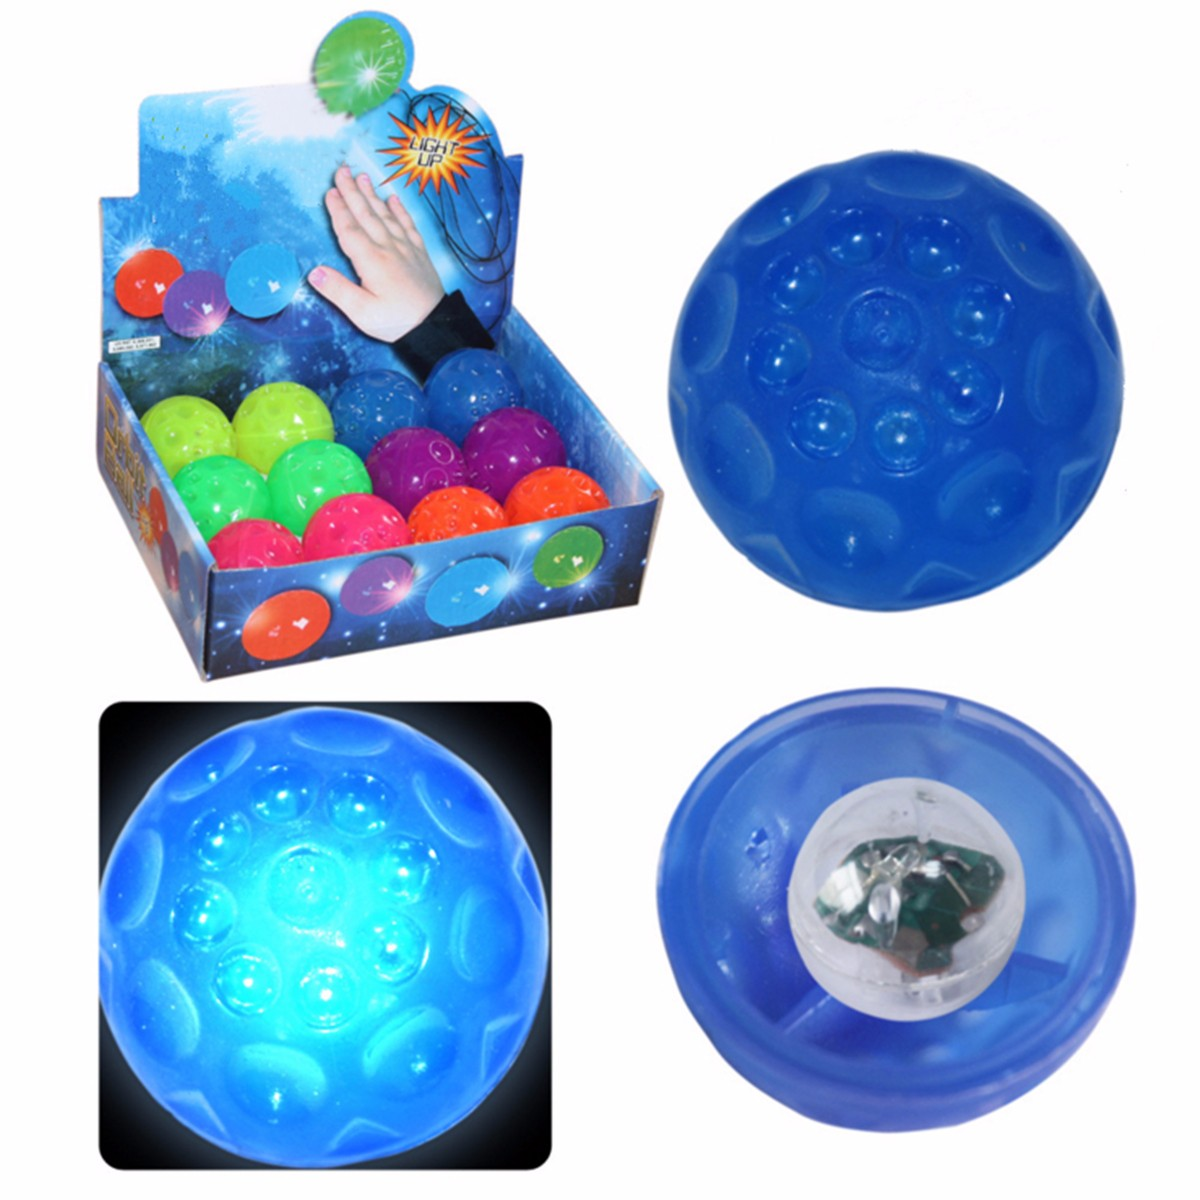 New 6cm Light Up Flashing Light Bouncing Meteor Soft Stress Ball Kids Boys Party Stocking Filler Pet Dog Sport Toy Baby Ball Toy(China (Mainland))